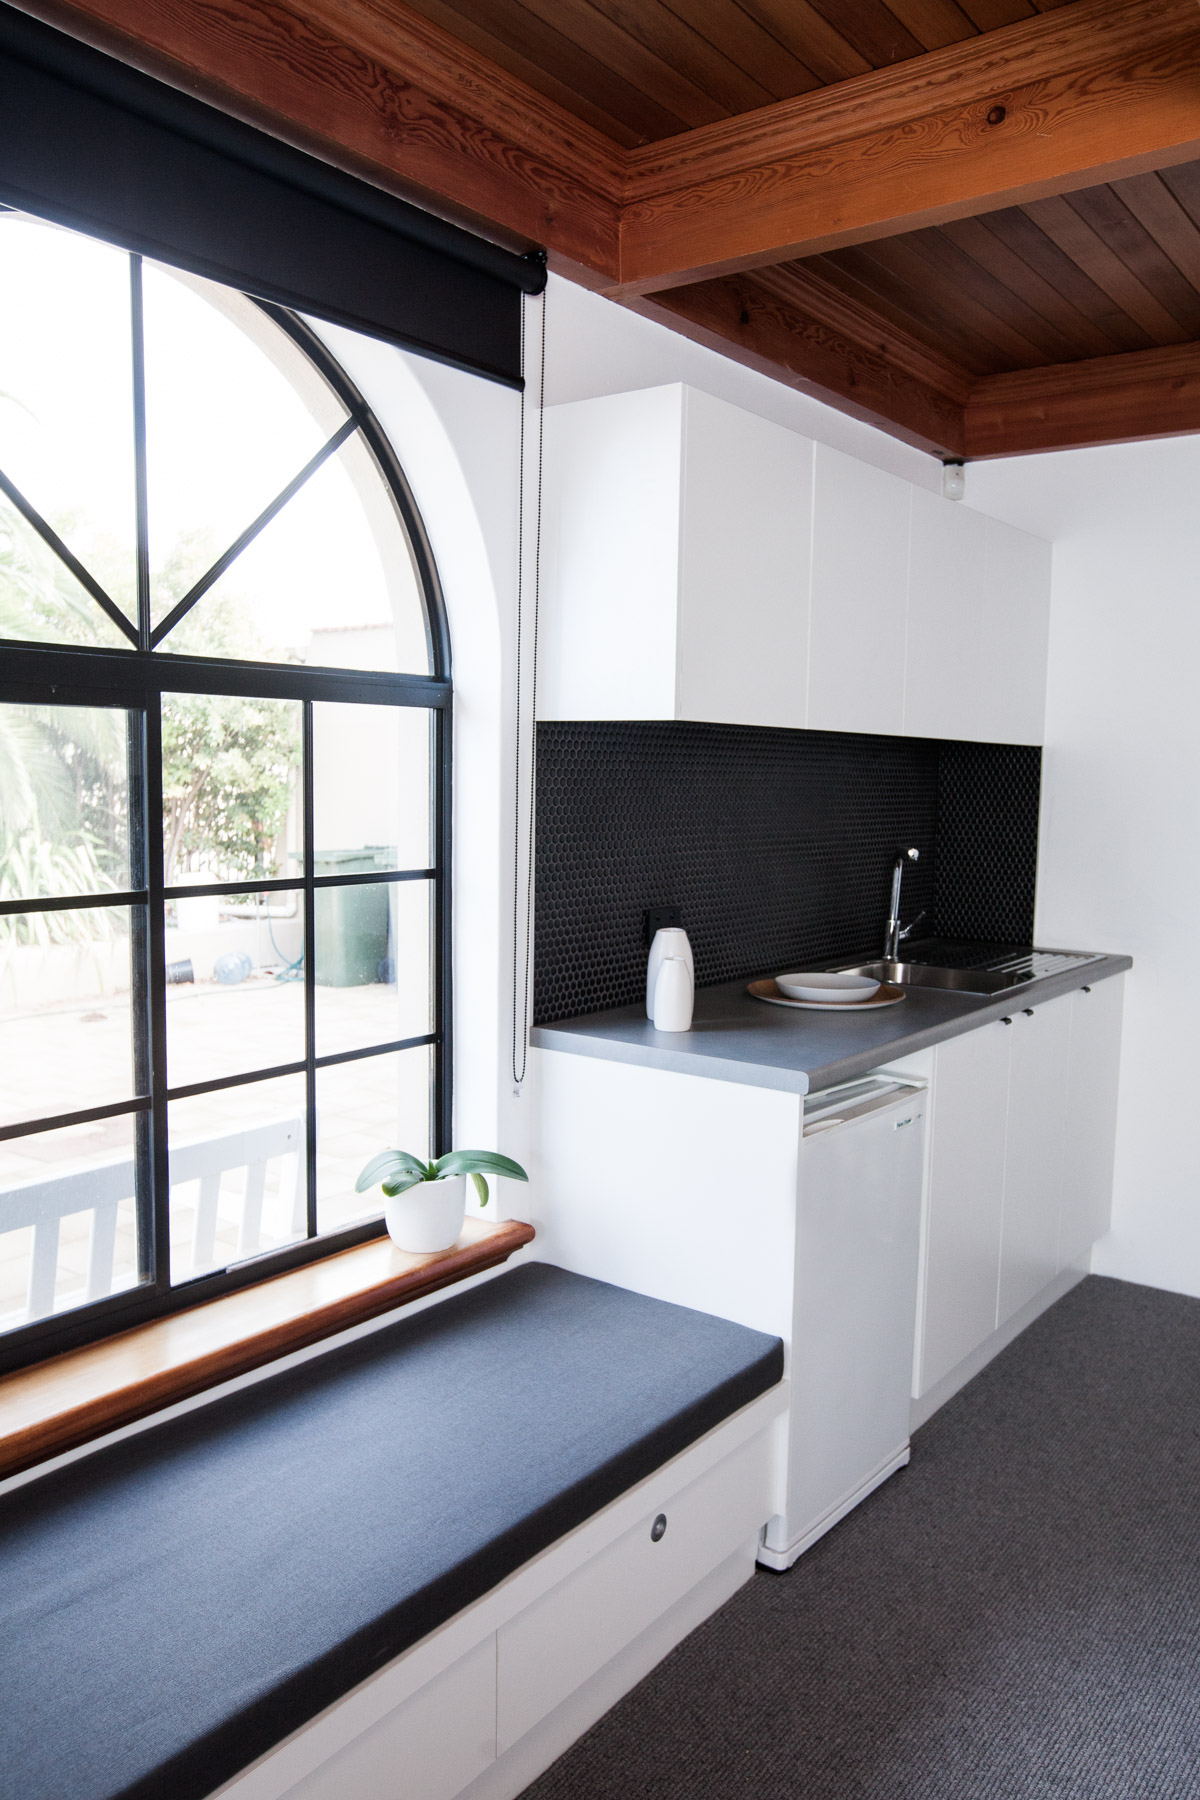 Study Kitchenette & Window Seat